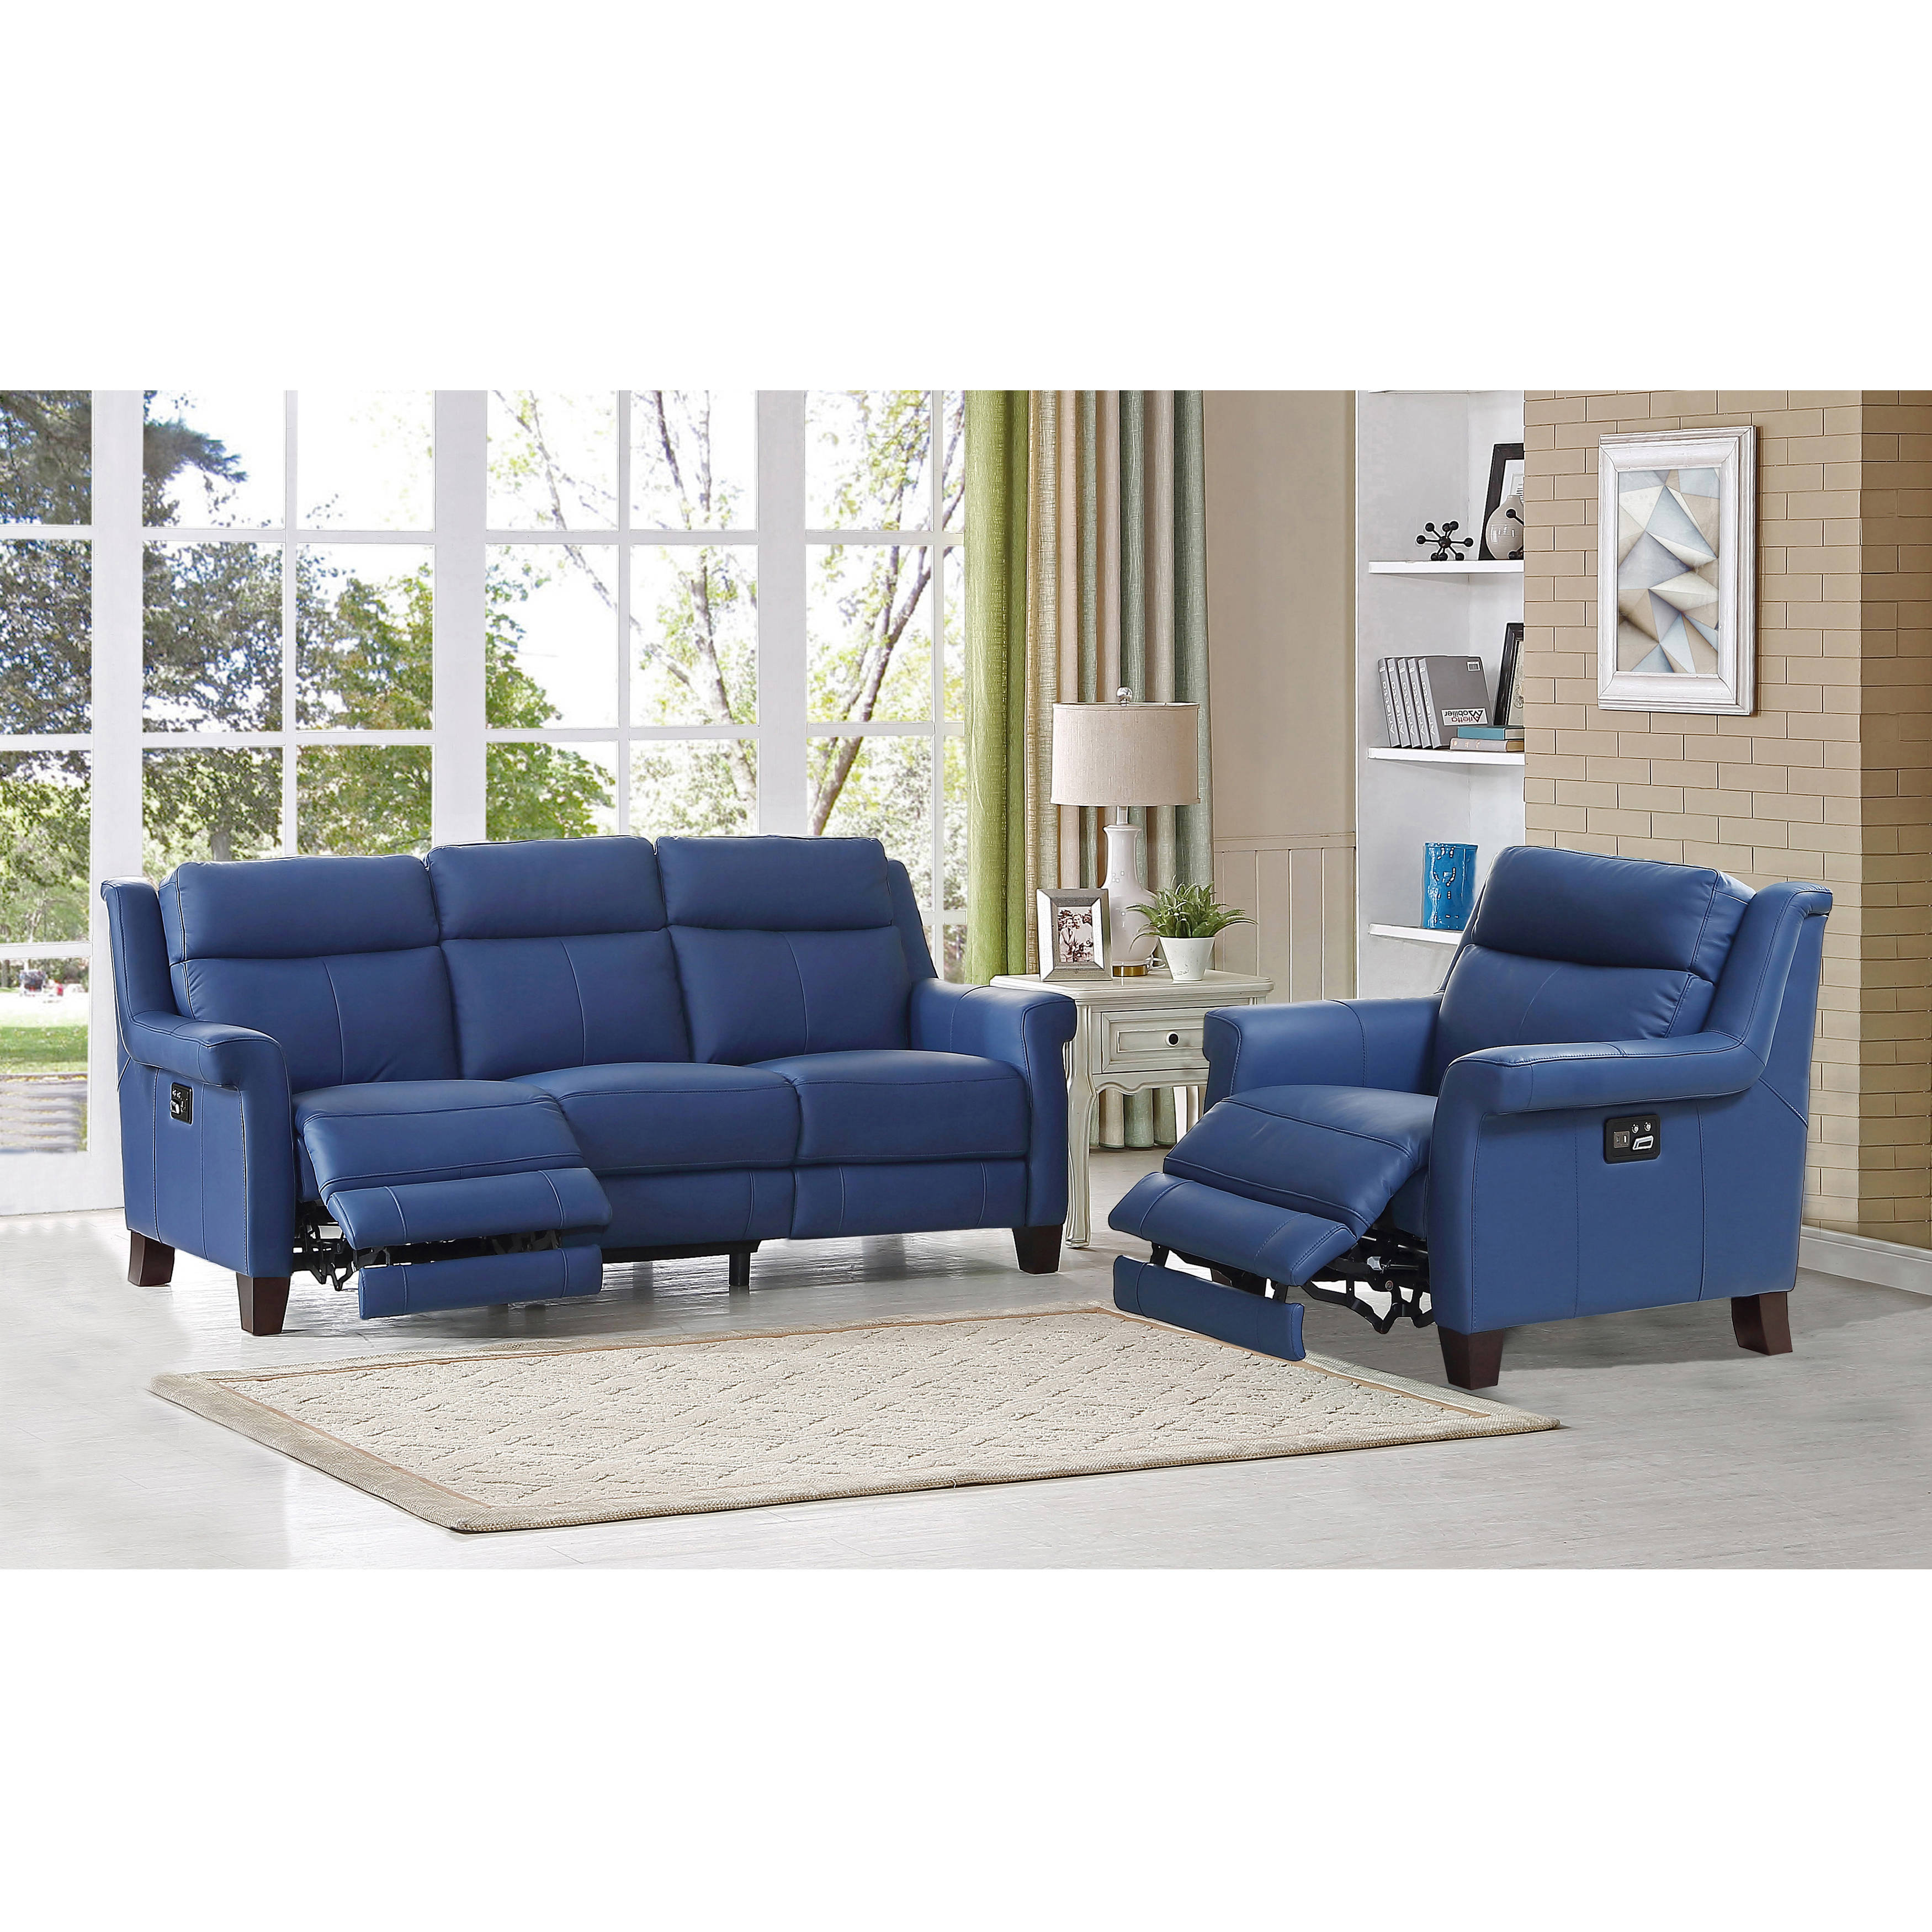 blue reclining sofa amax leather dolce blue power reclining sofa and recliner set | the classy UGDBXQF